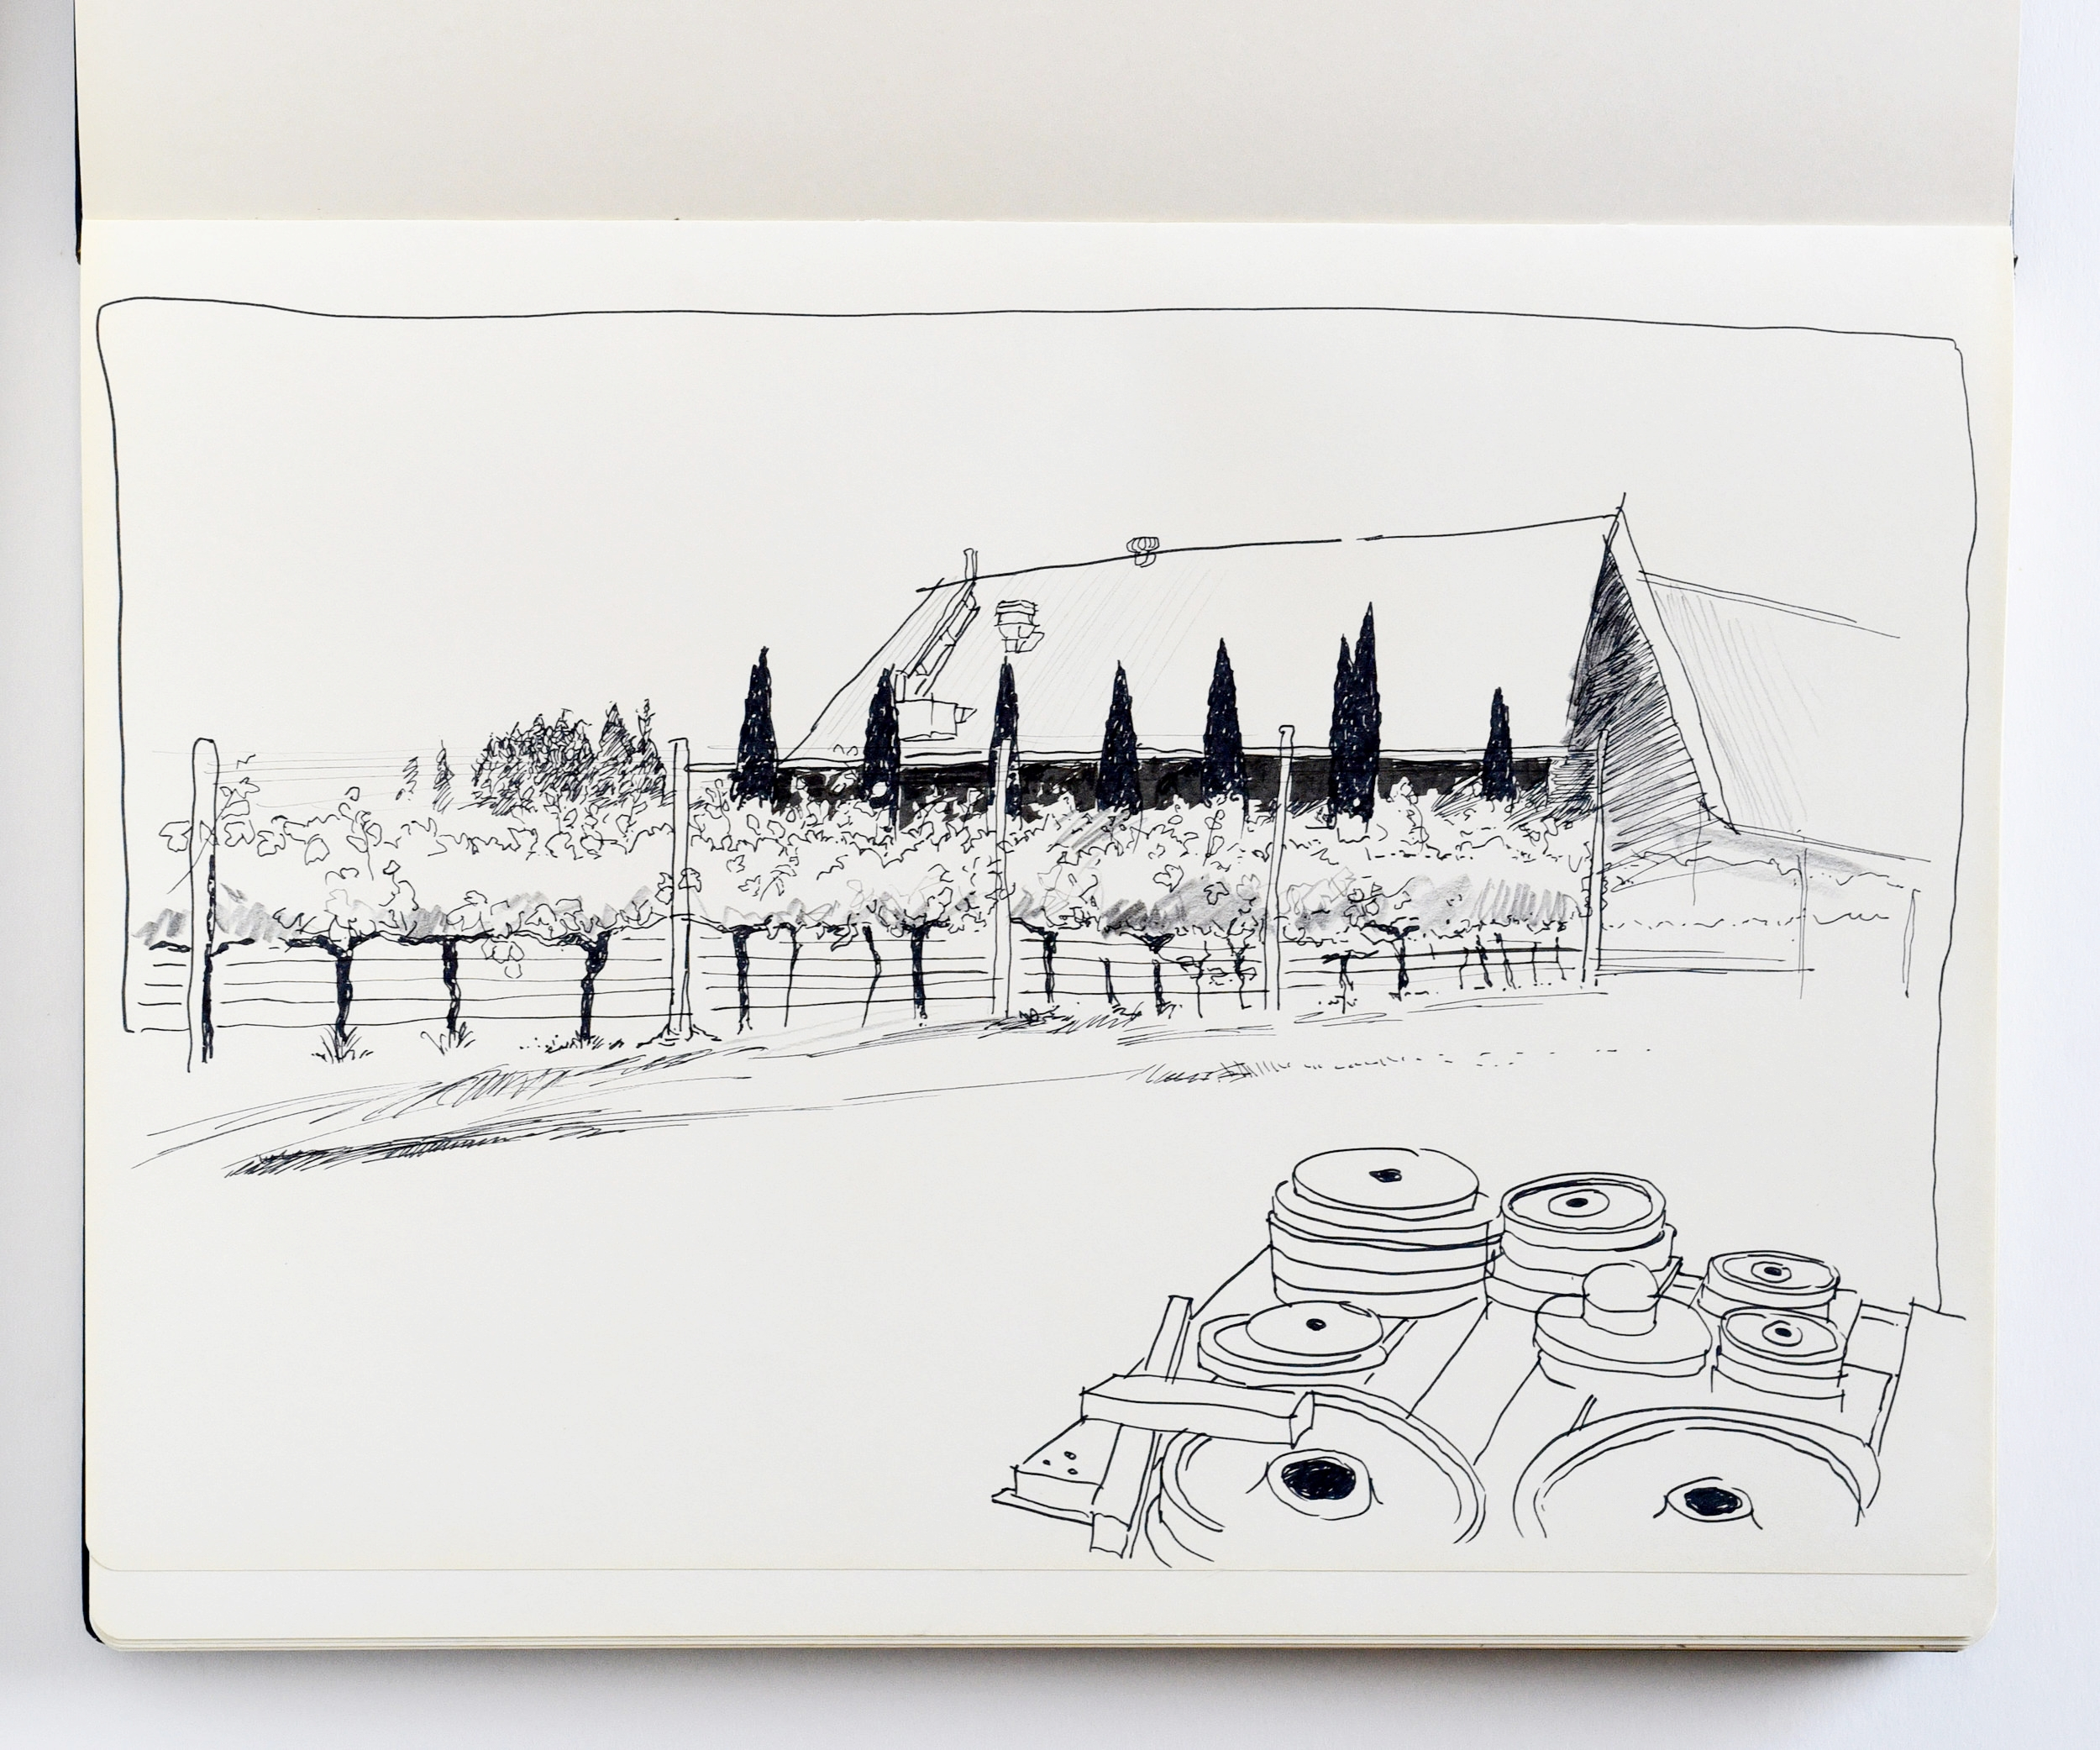 Drawing and view of Castagna Vineyard in Beechworth Victoria